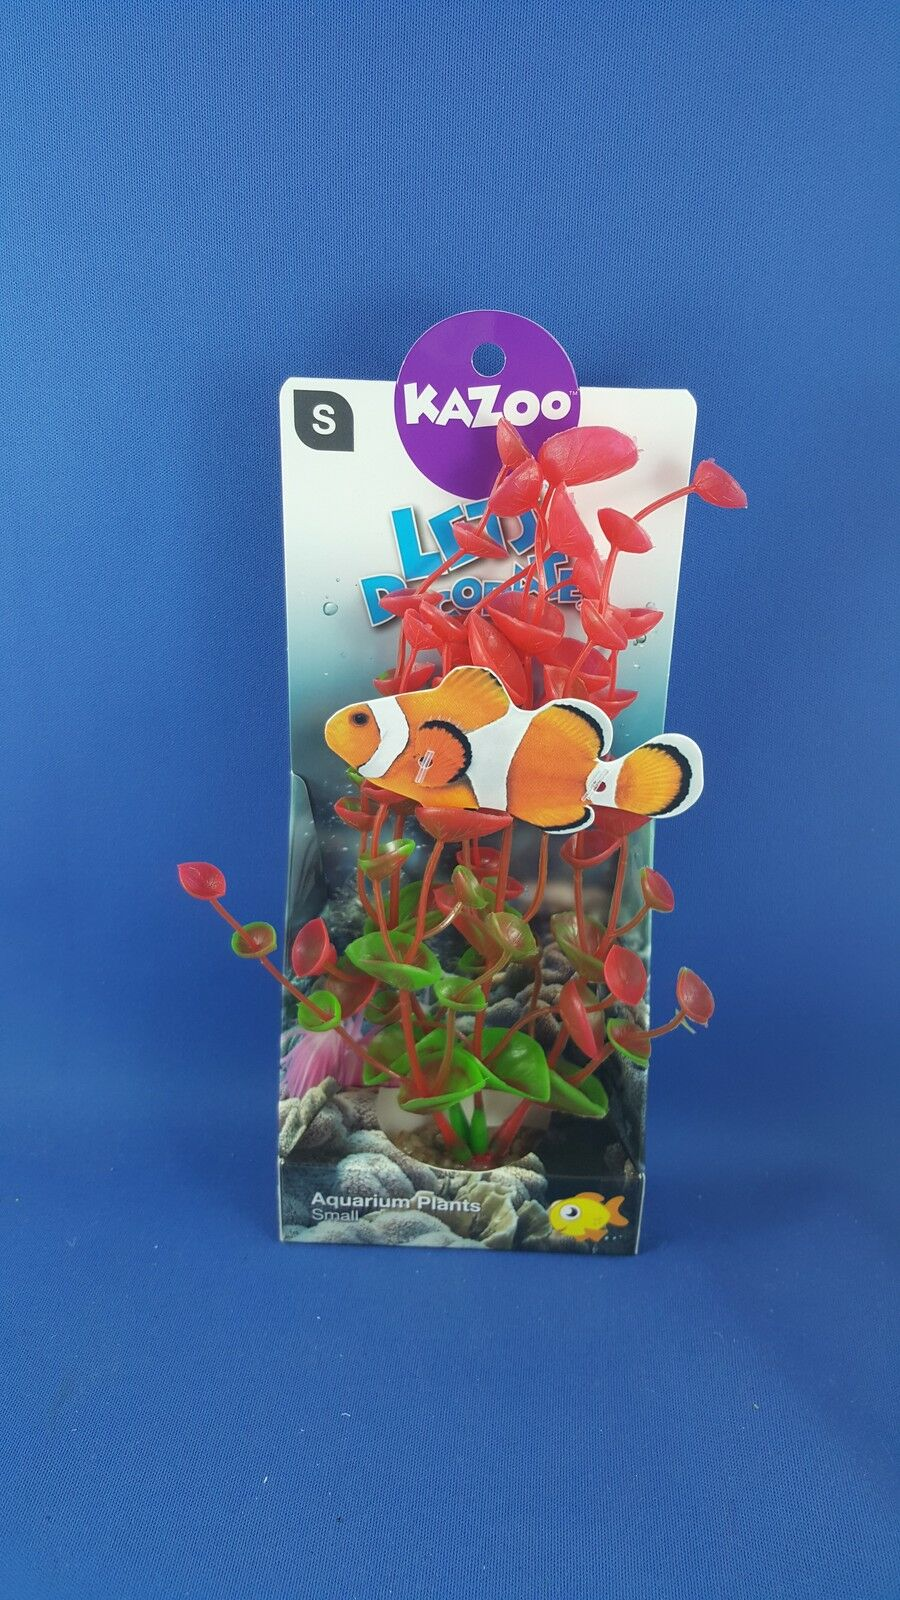 Kazoo aquarium plant, small with red & green leaves with solid pebble base